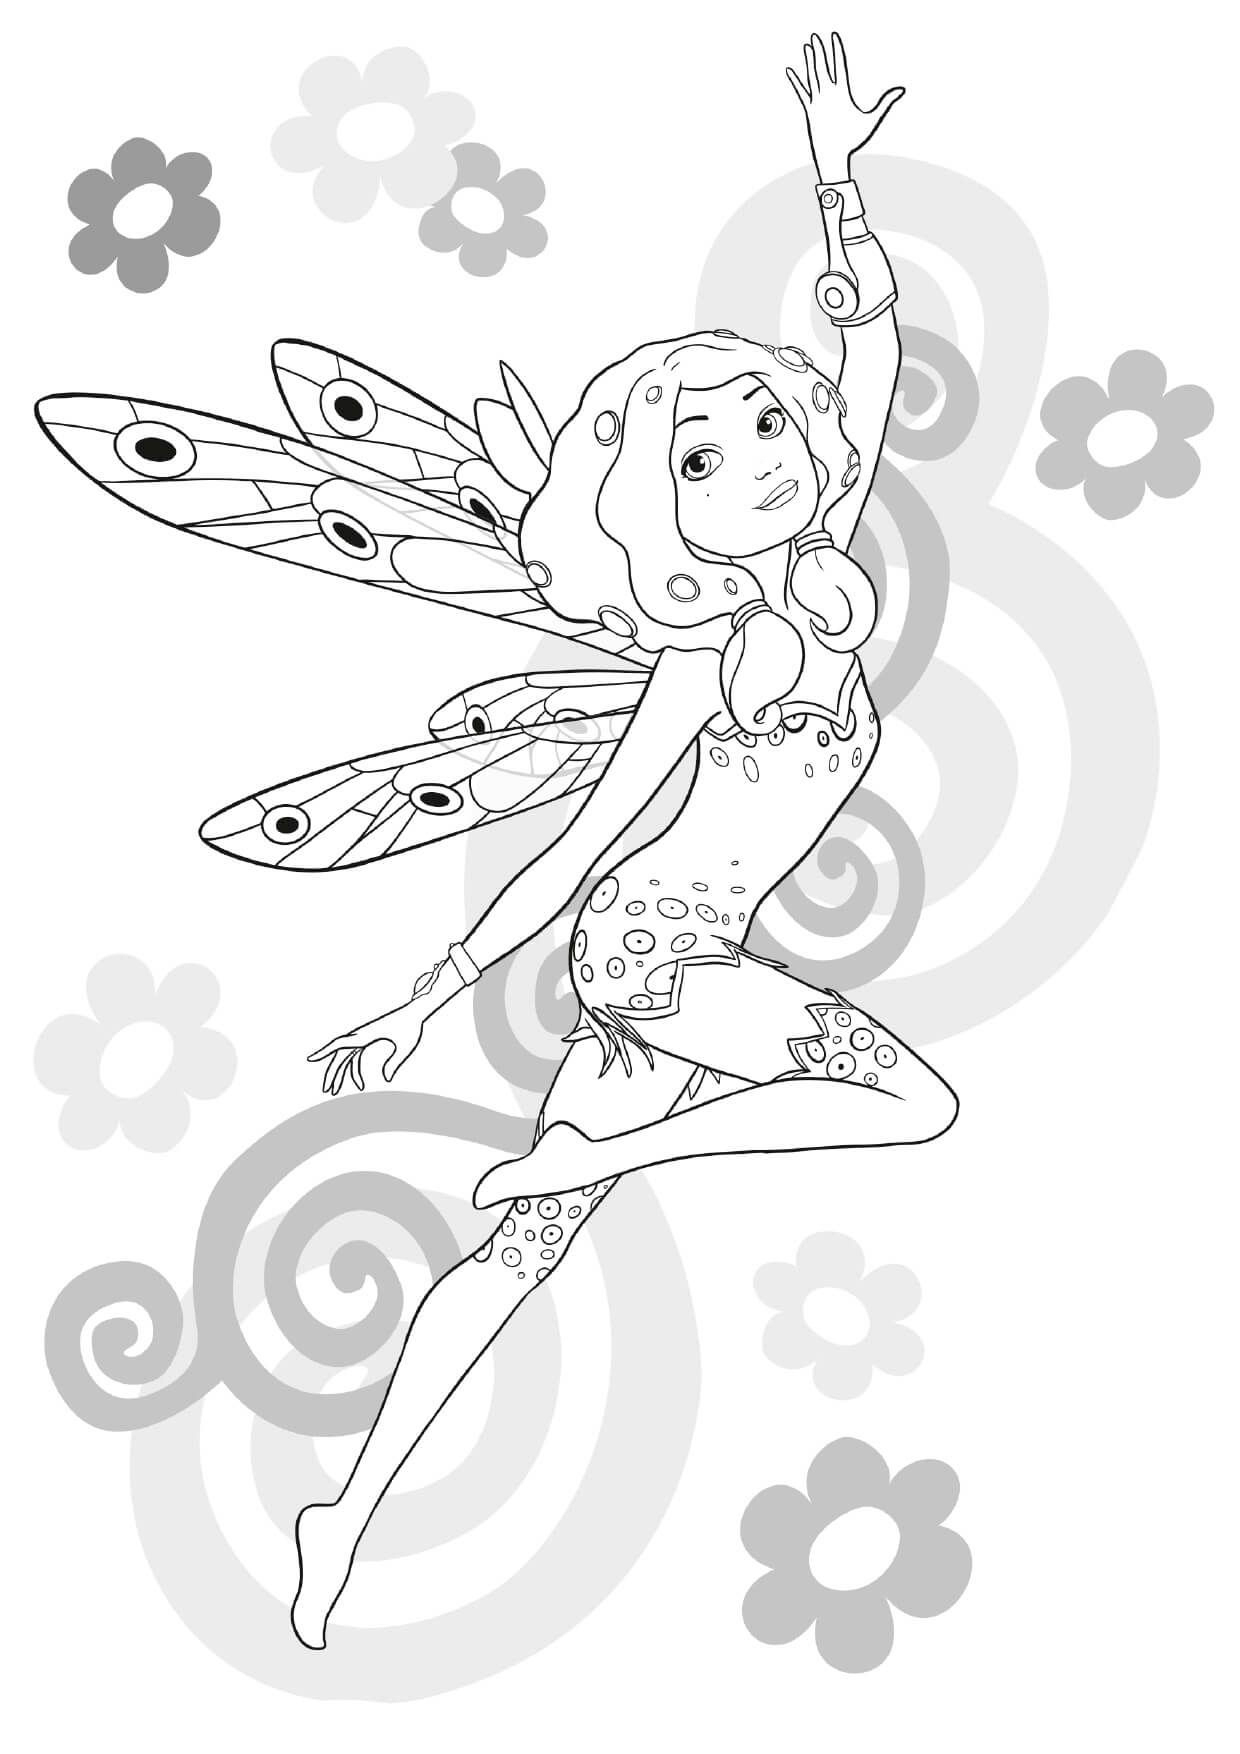 Mia and Me Coloring Pages - Best Coloring Pages For Kids